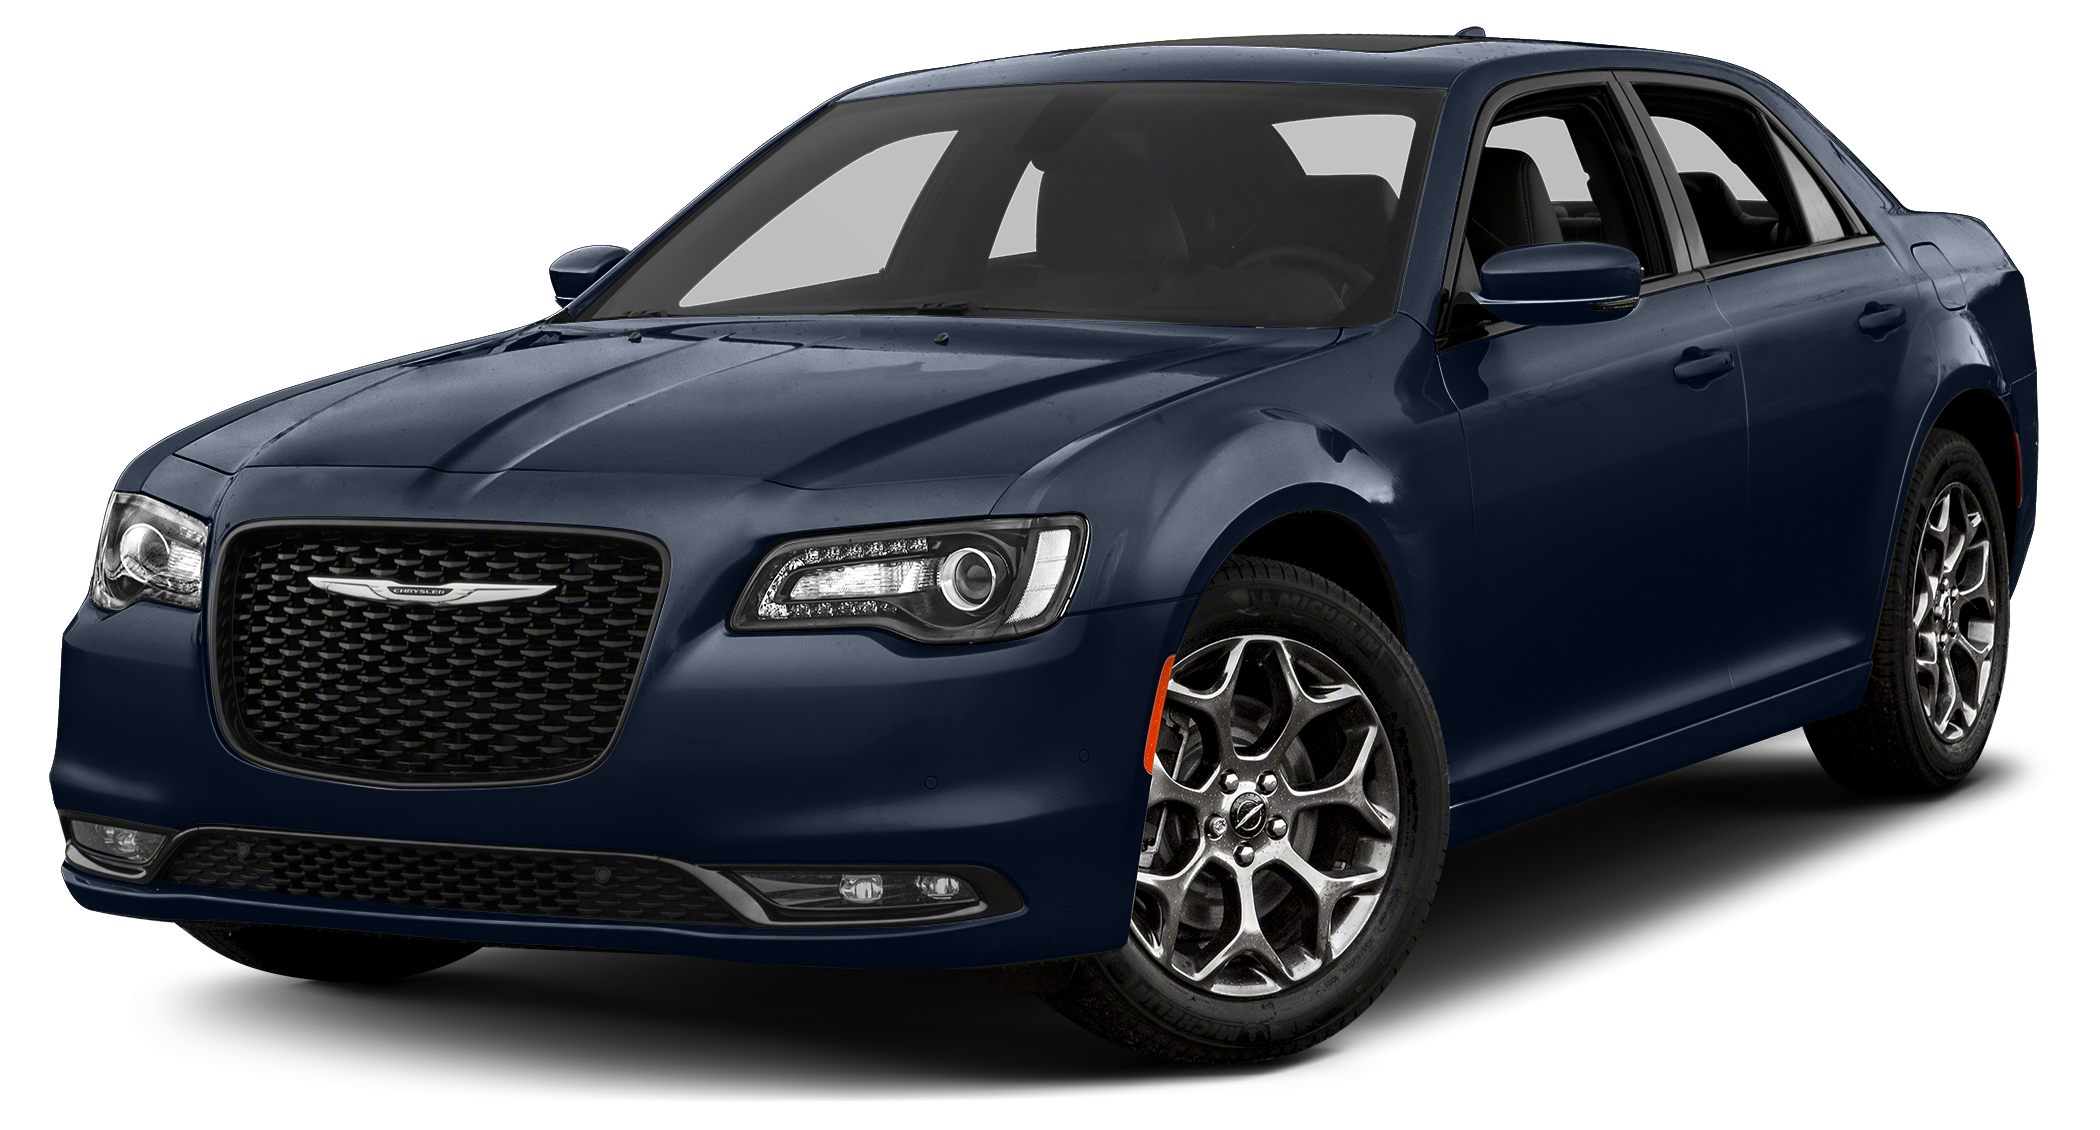 2016 Chrysler 300 S 1 OWNER FACTORY WARRANTY AWD S MODEL SUNROOF and SW